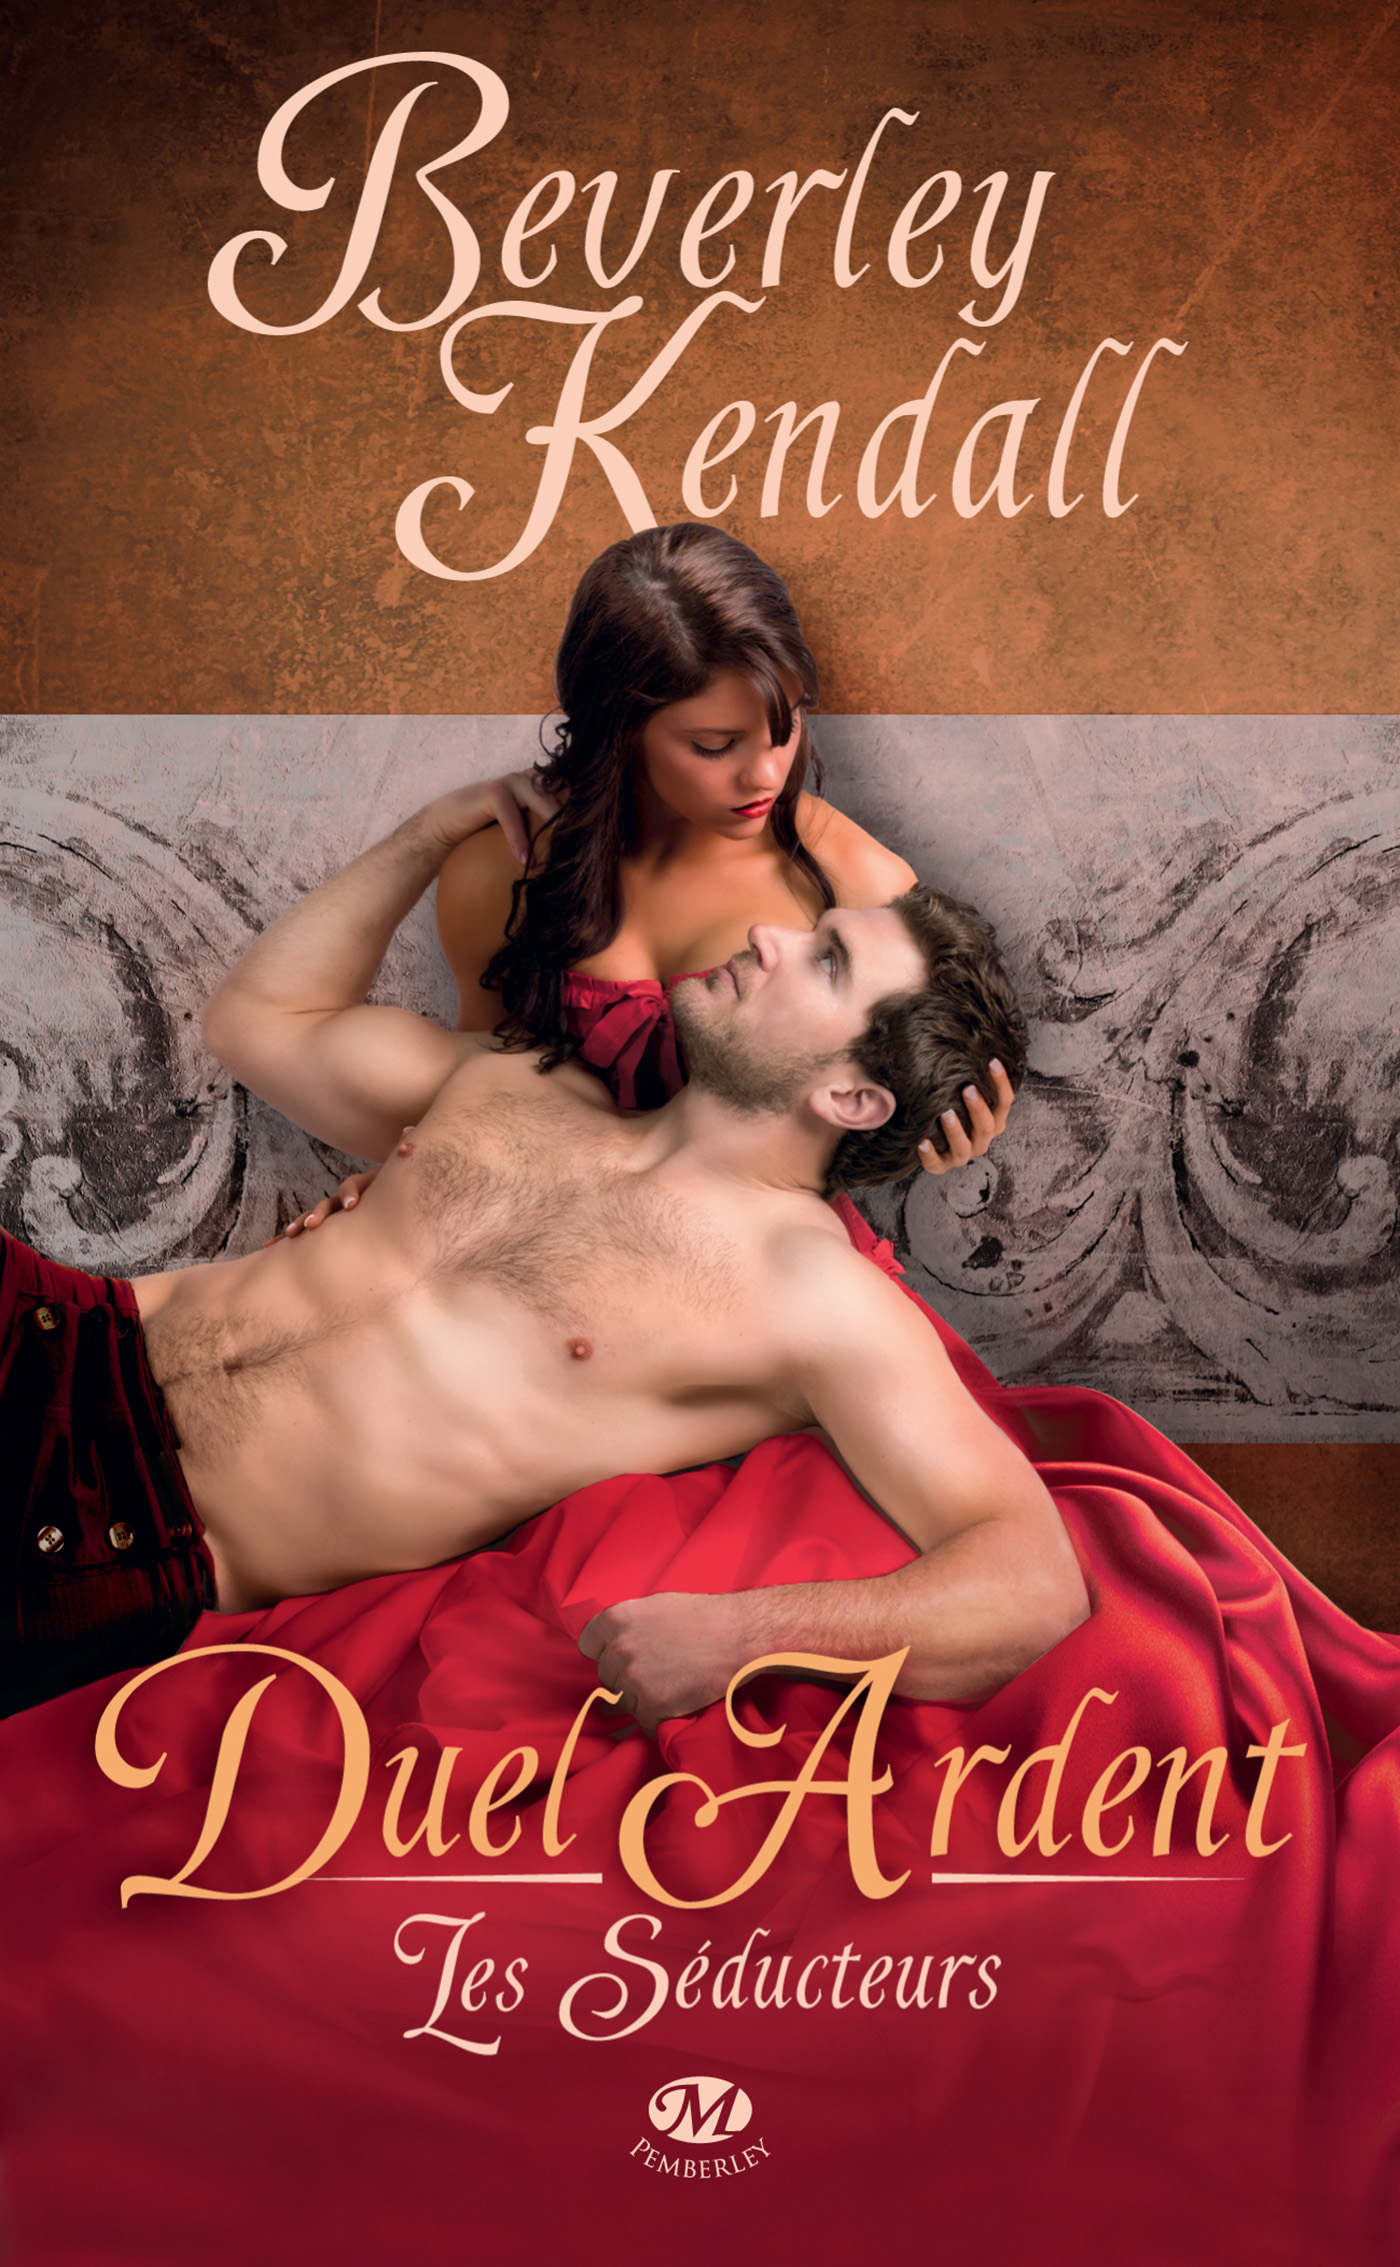 Duel ardent